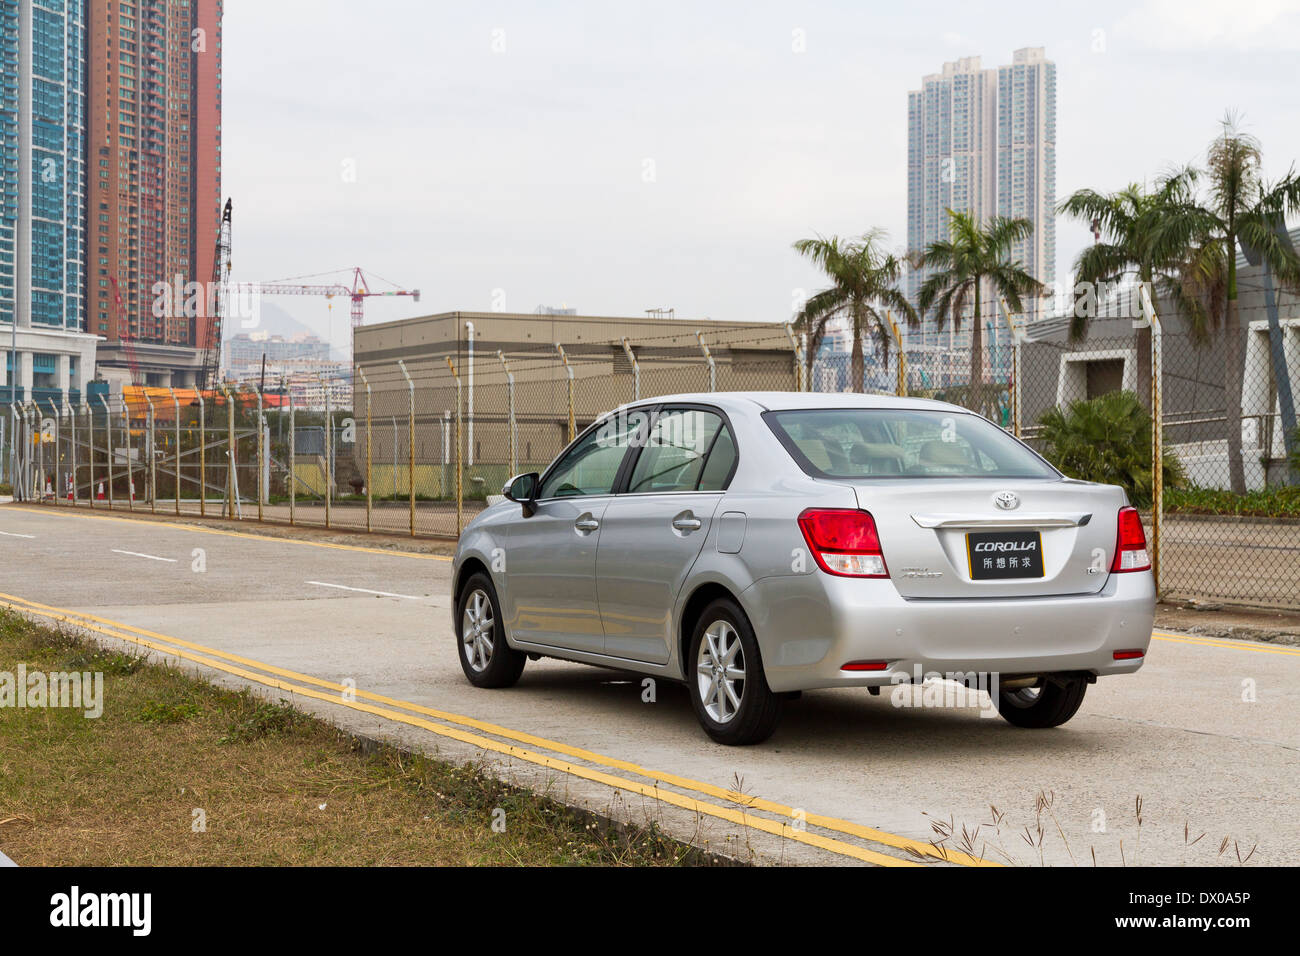 Toyota Corolla The entry level sedan in japan market - Stock Image